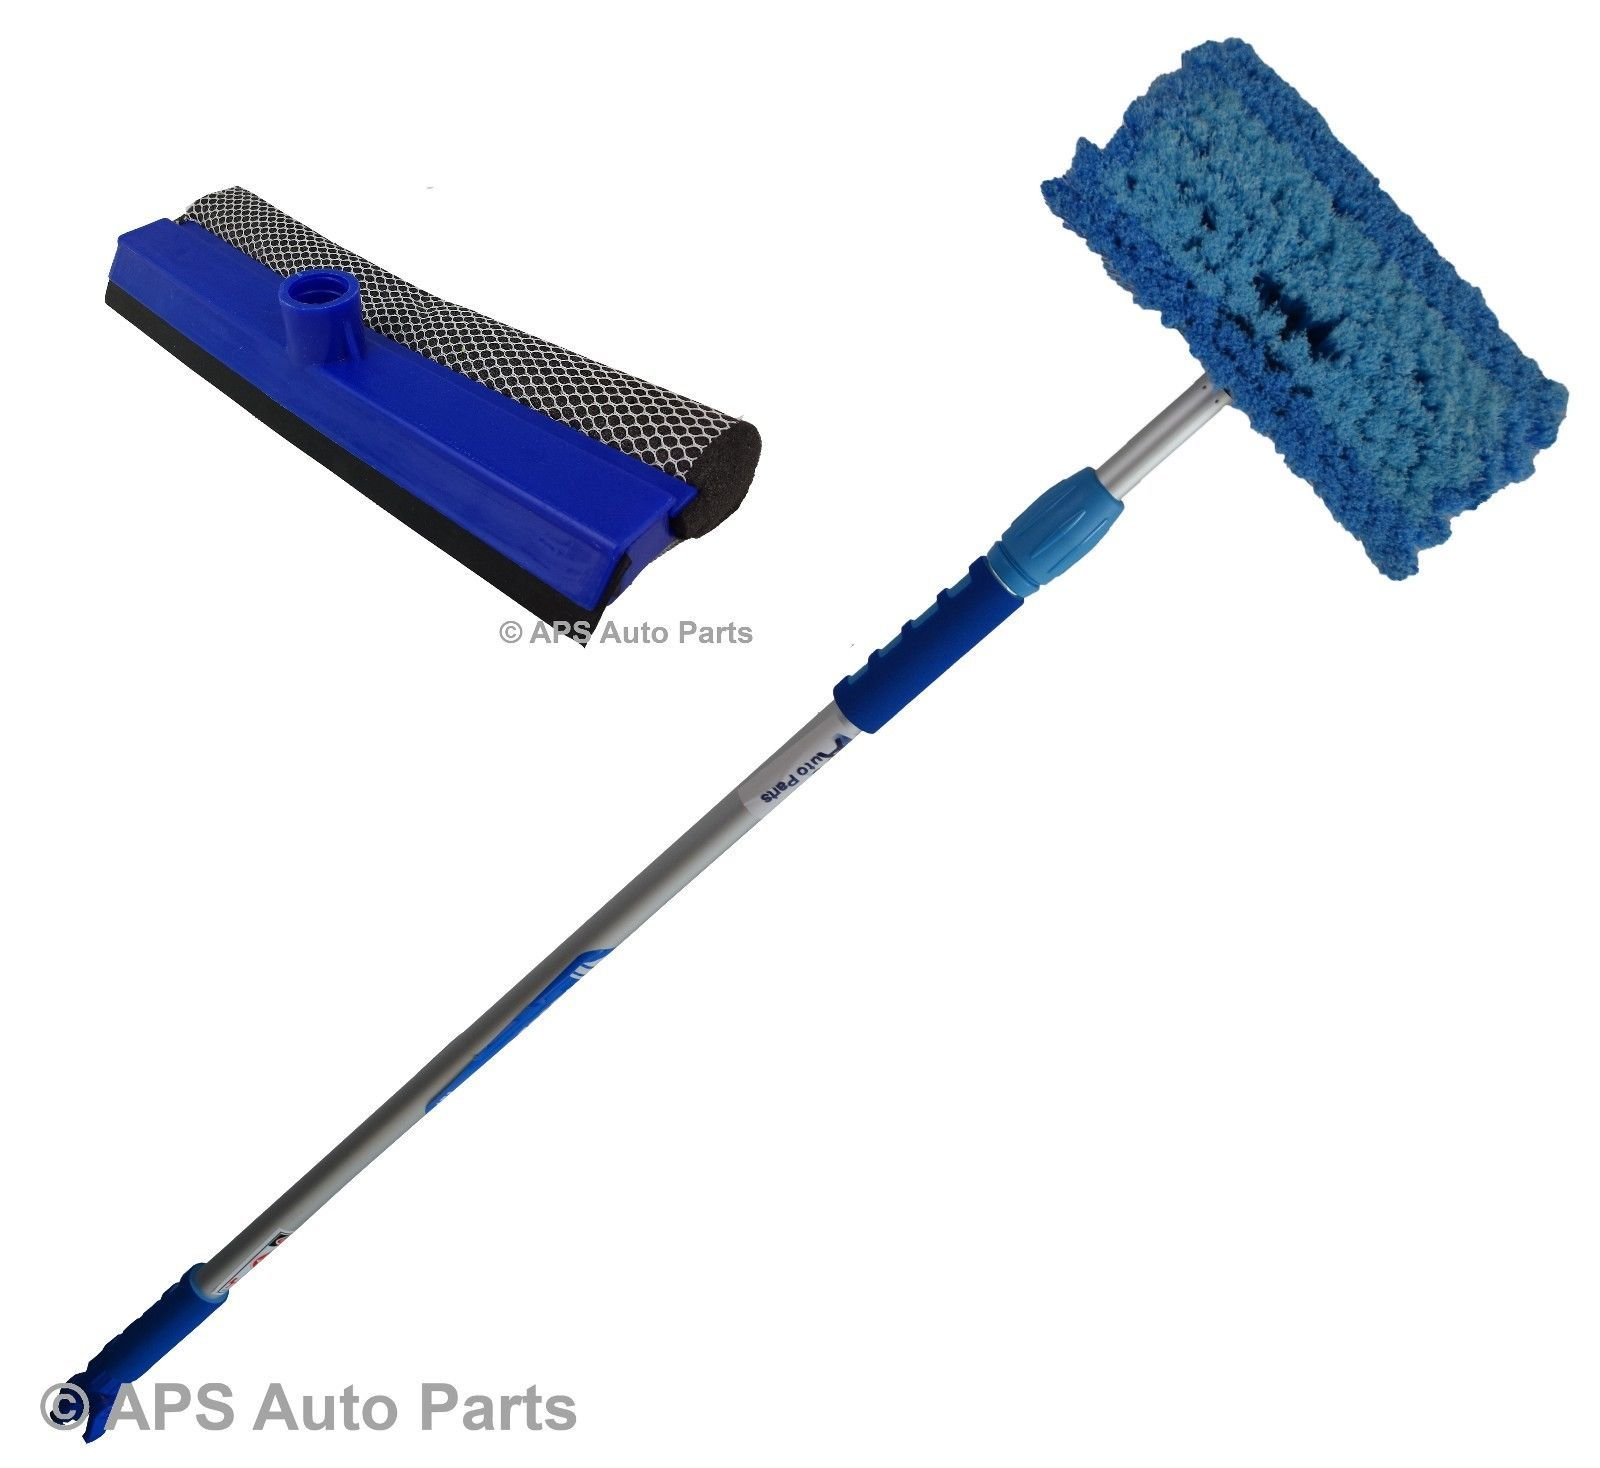 2m Aluminium Telescopic Water Fed Extending Wash Brush Squeegee Car House Window